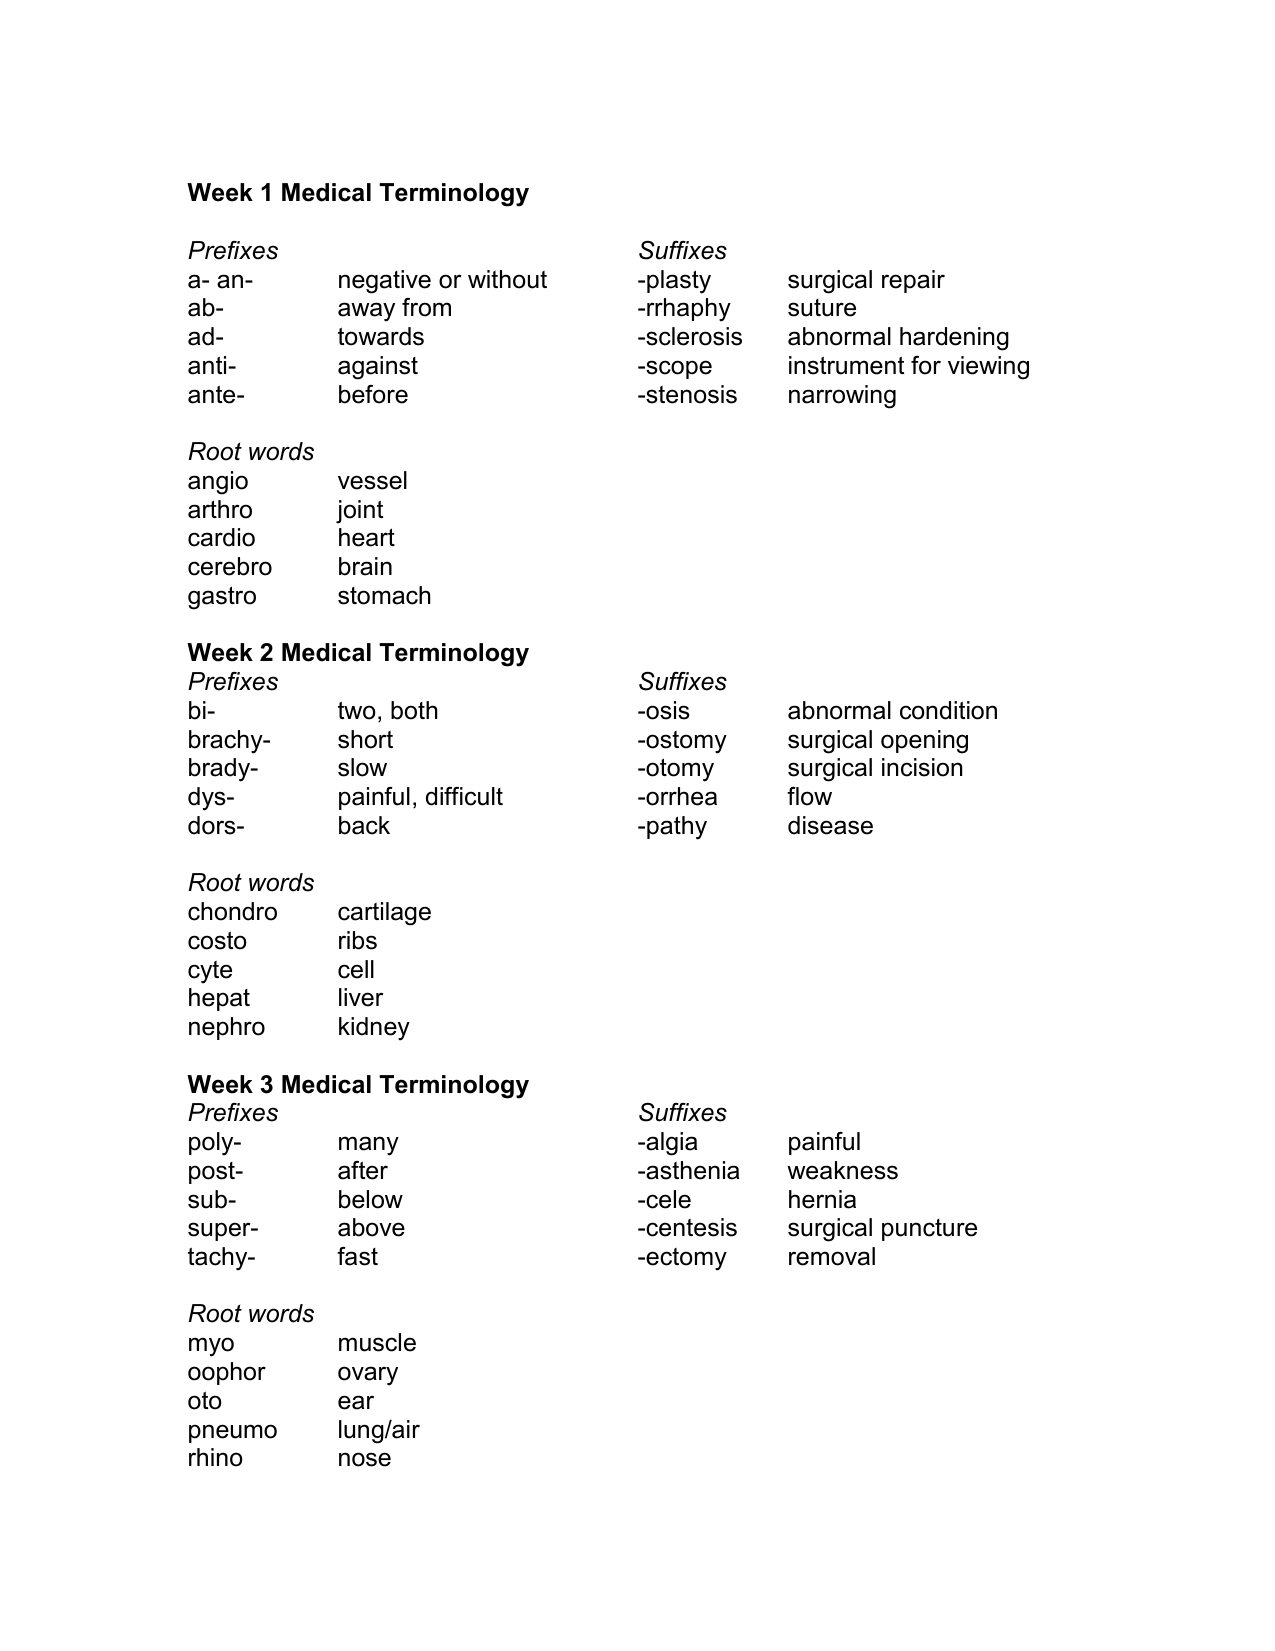 Week 1 Medical Terminology Prefixes Suffixes A An